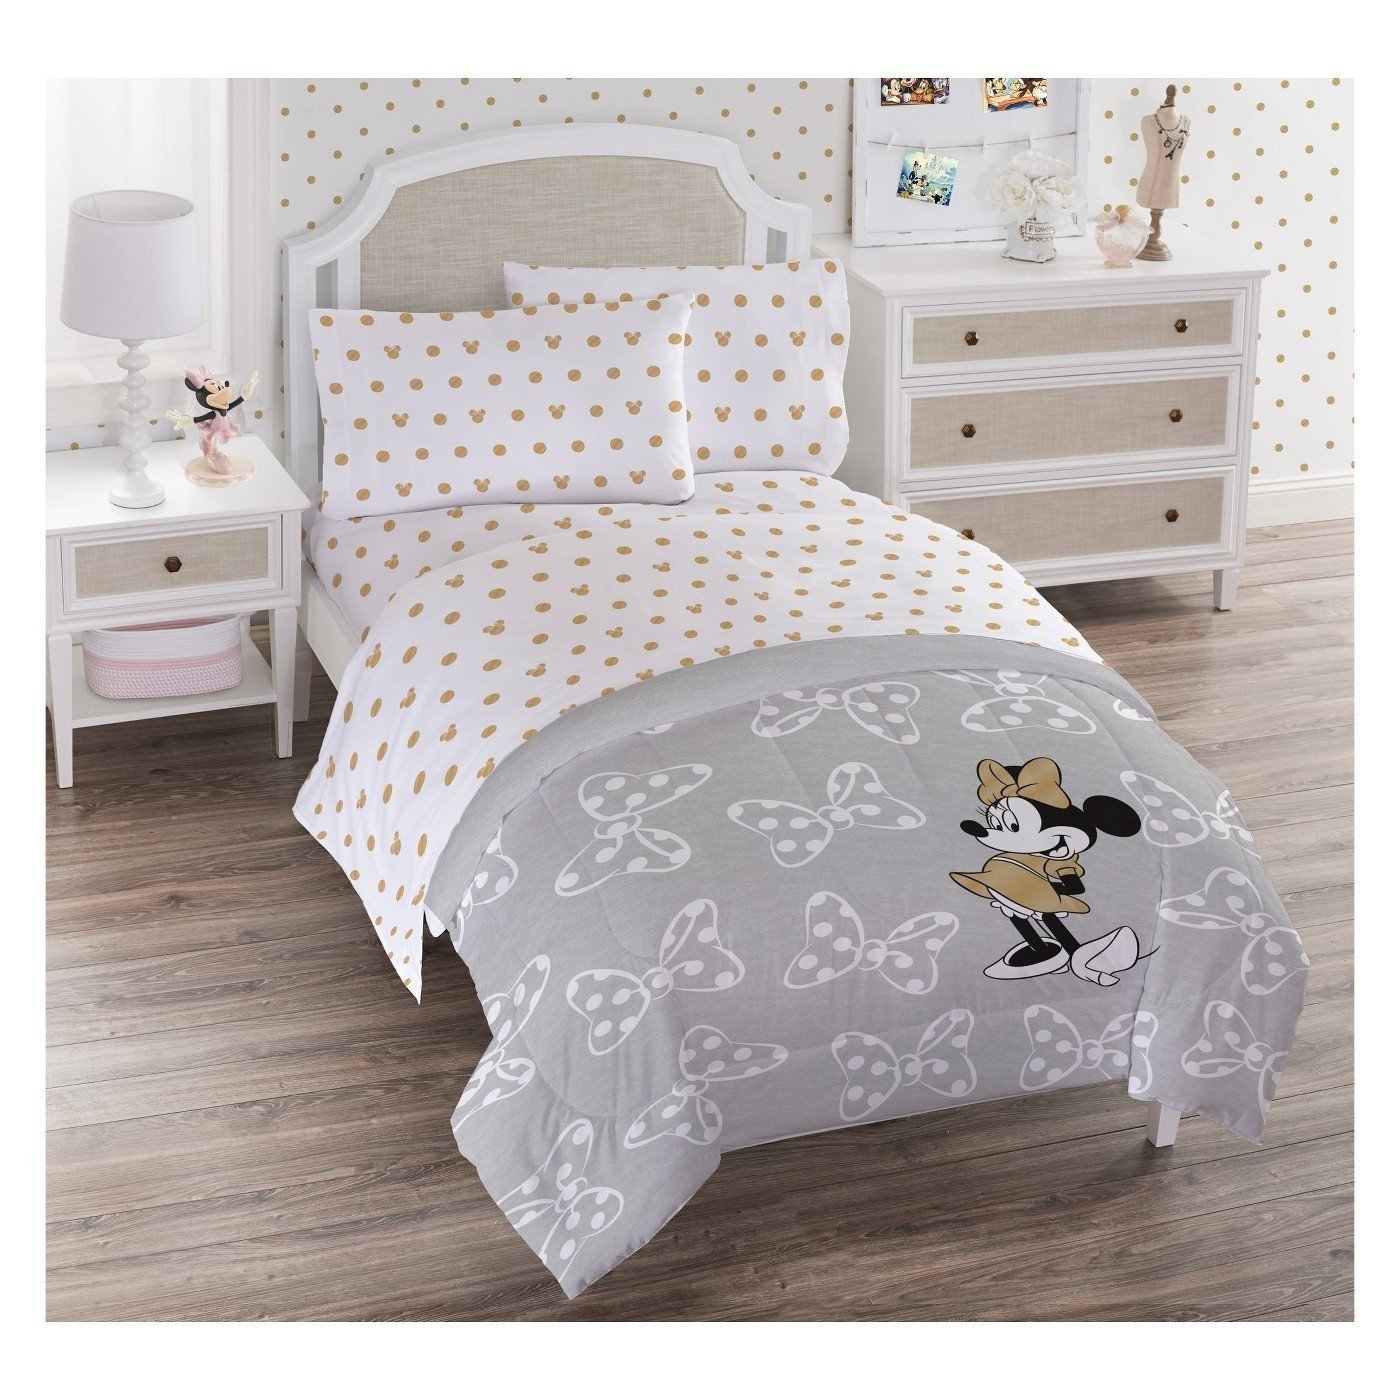 Disney Minnie Mouse Twin Quilt Set Gray/White